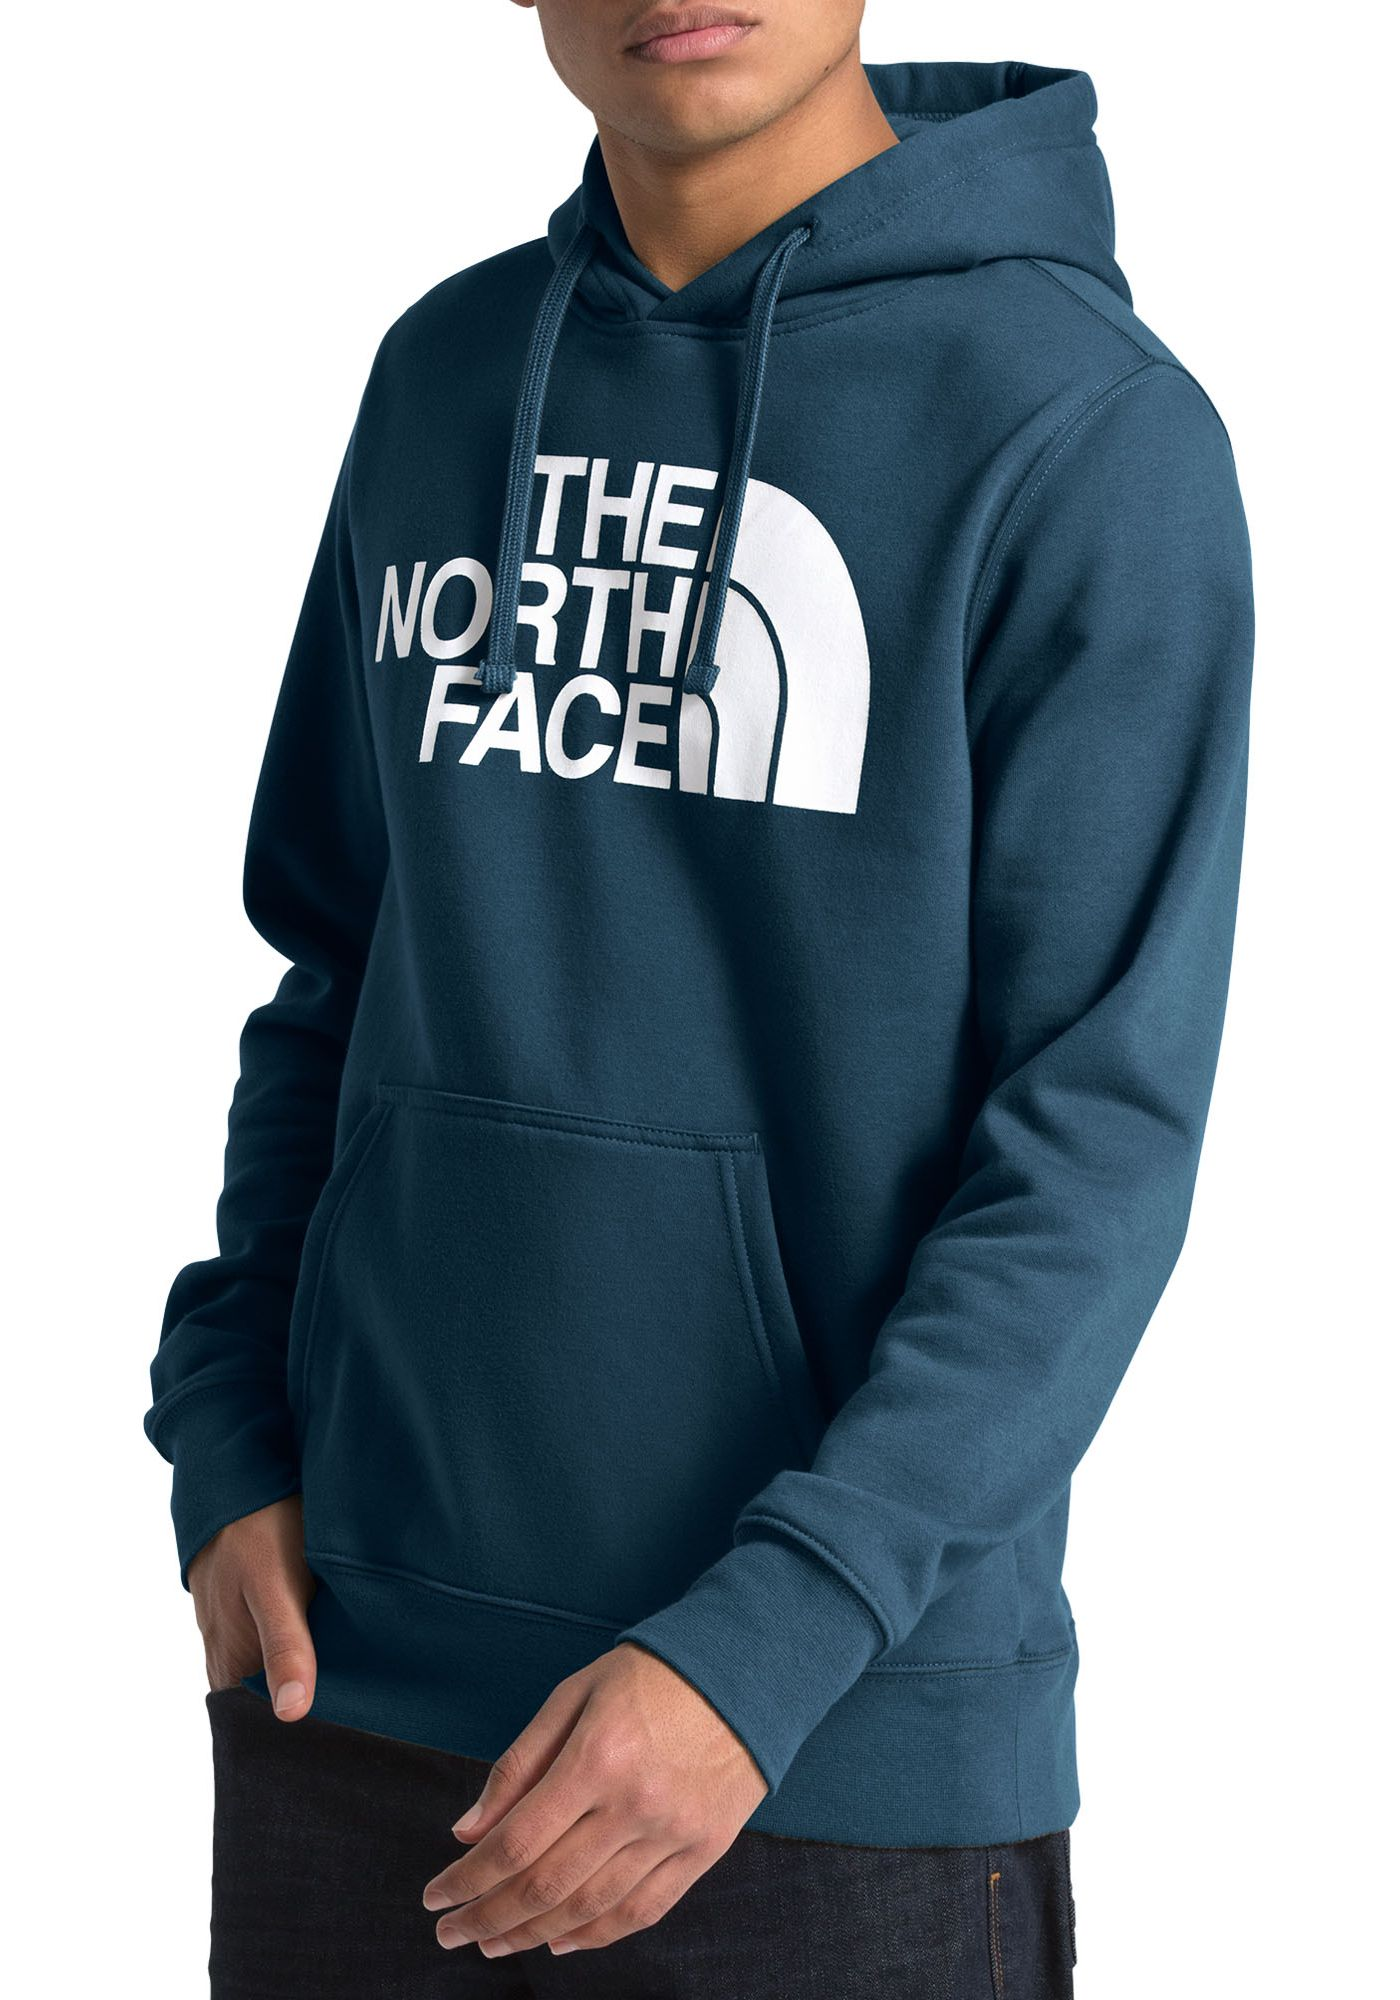 The North Face Men's Half Dome Fashion Hoodie 1